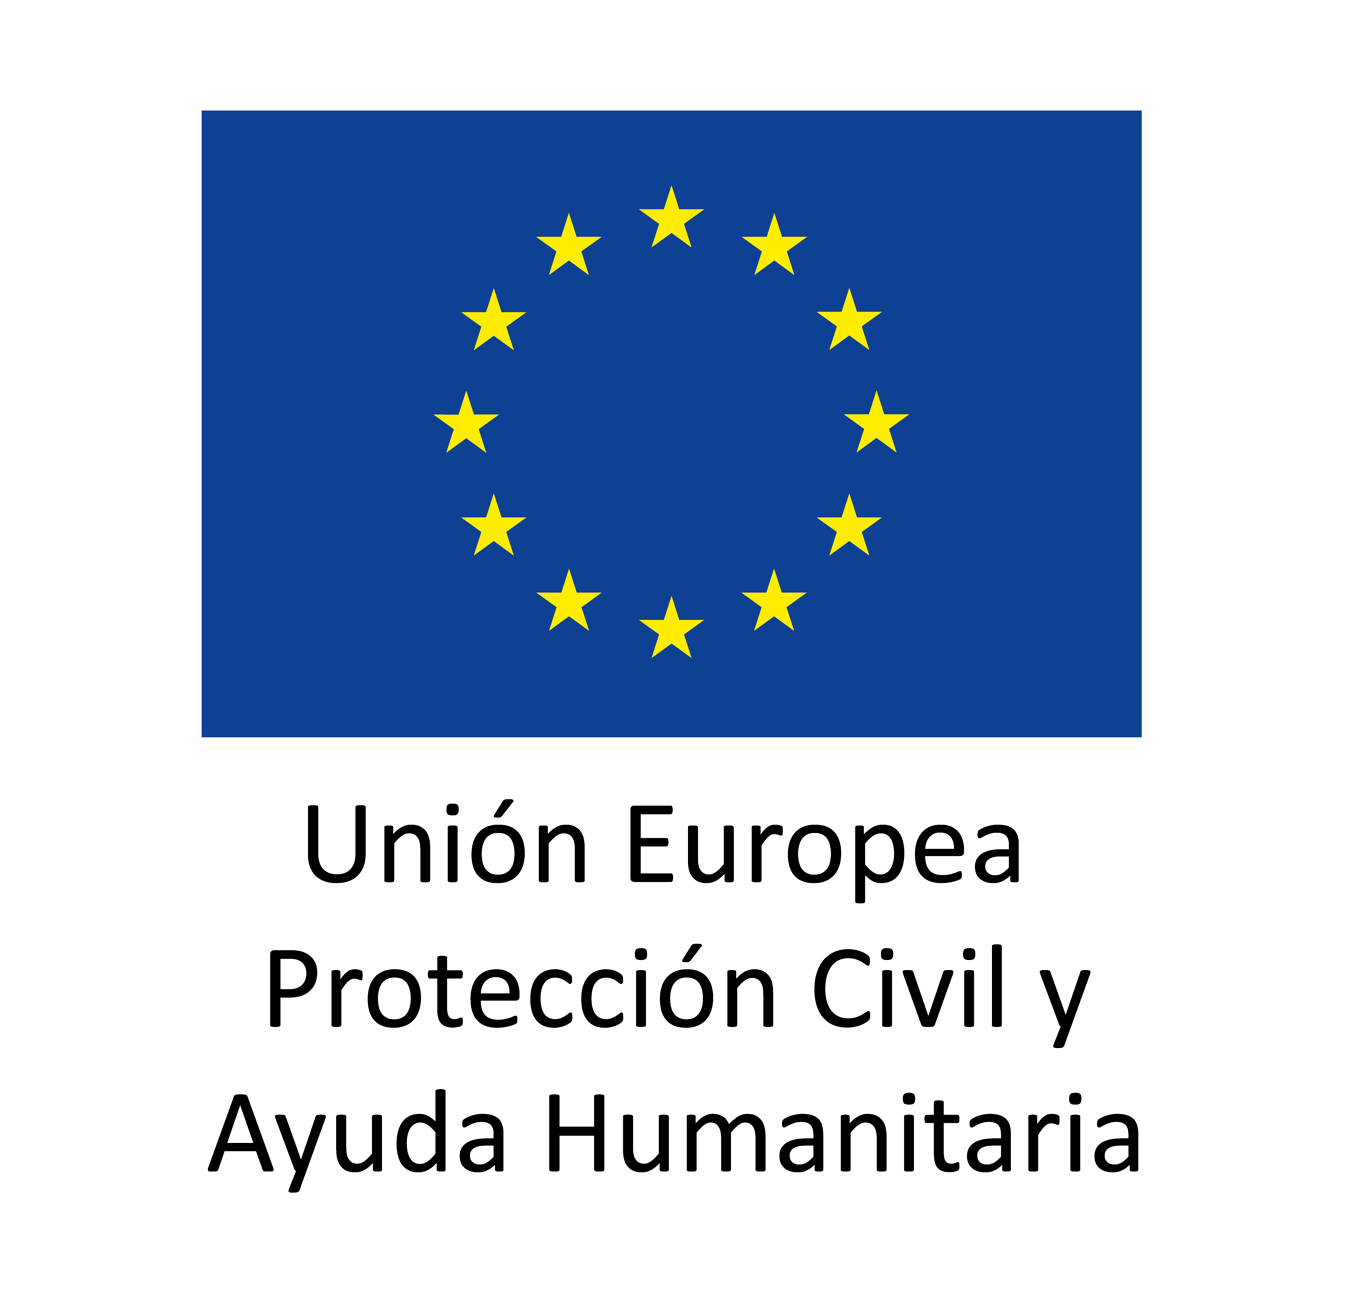 logo-union-europea-proteccion-civil-ayuda-humanitaria